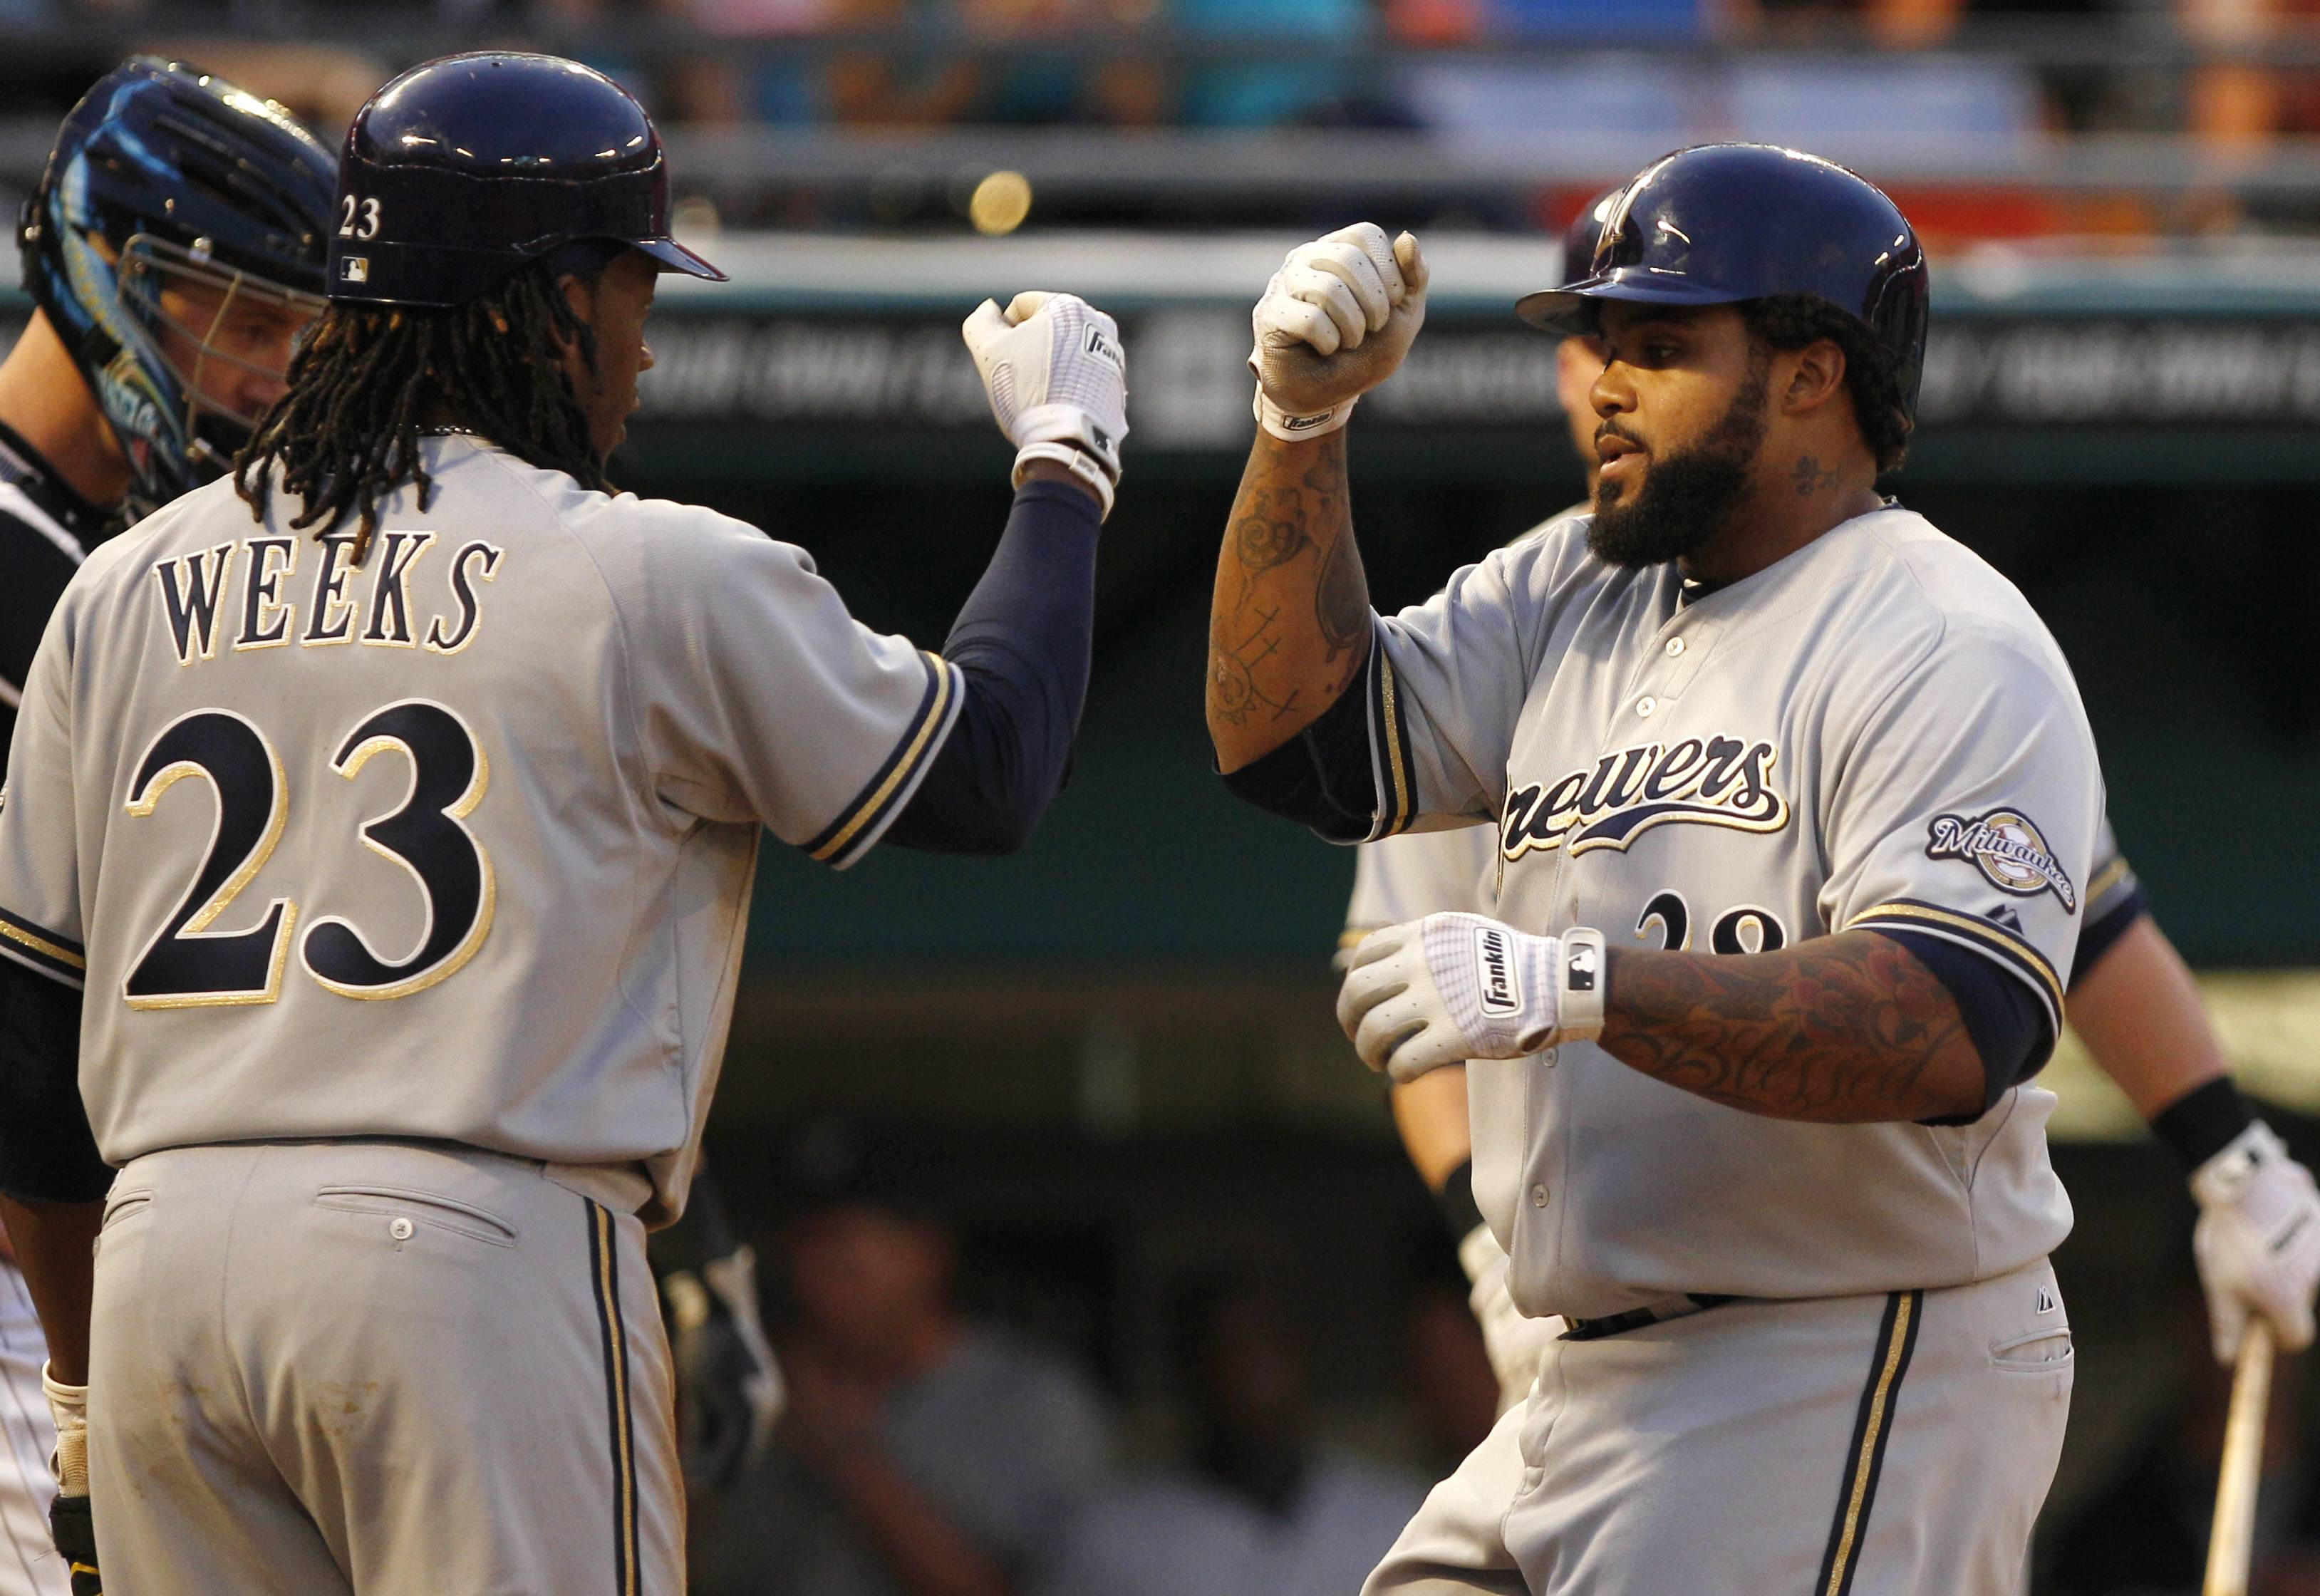 Milwaukee Brewers slugger Prince Fielder, right, selected teammate Rickie Weeks, Los Angeles' Matt Kemp and St. Louis' Matt Holliday to represent the National League in Monday night's Home Run Derby.